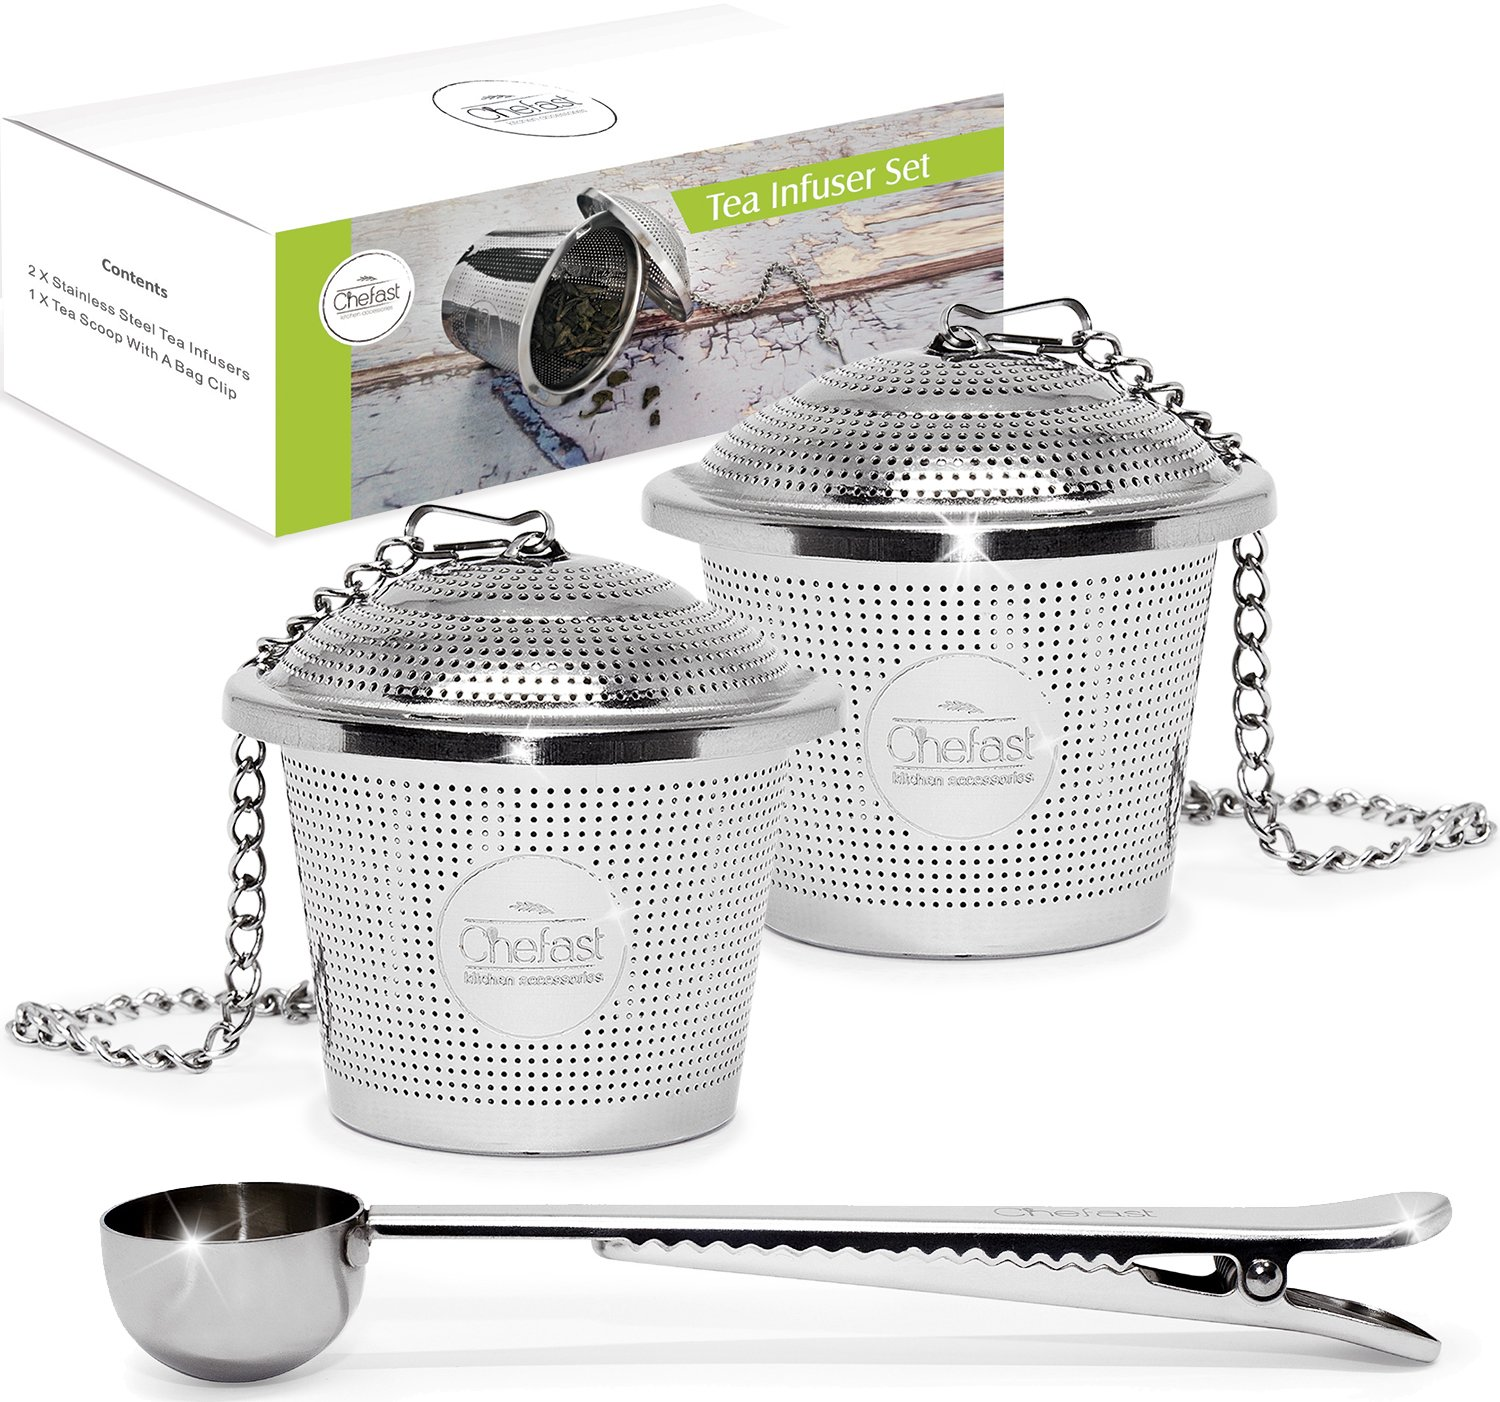 Tea Infuser Set by Chefast (Large Size) - Combo Kit of 2 Multi Cup Infusers & Metal Scoop with Bag Clip - Reusable Stainless Steel Strainers and Steepers for Loose Leaf Teas